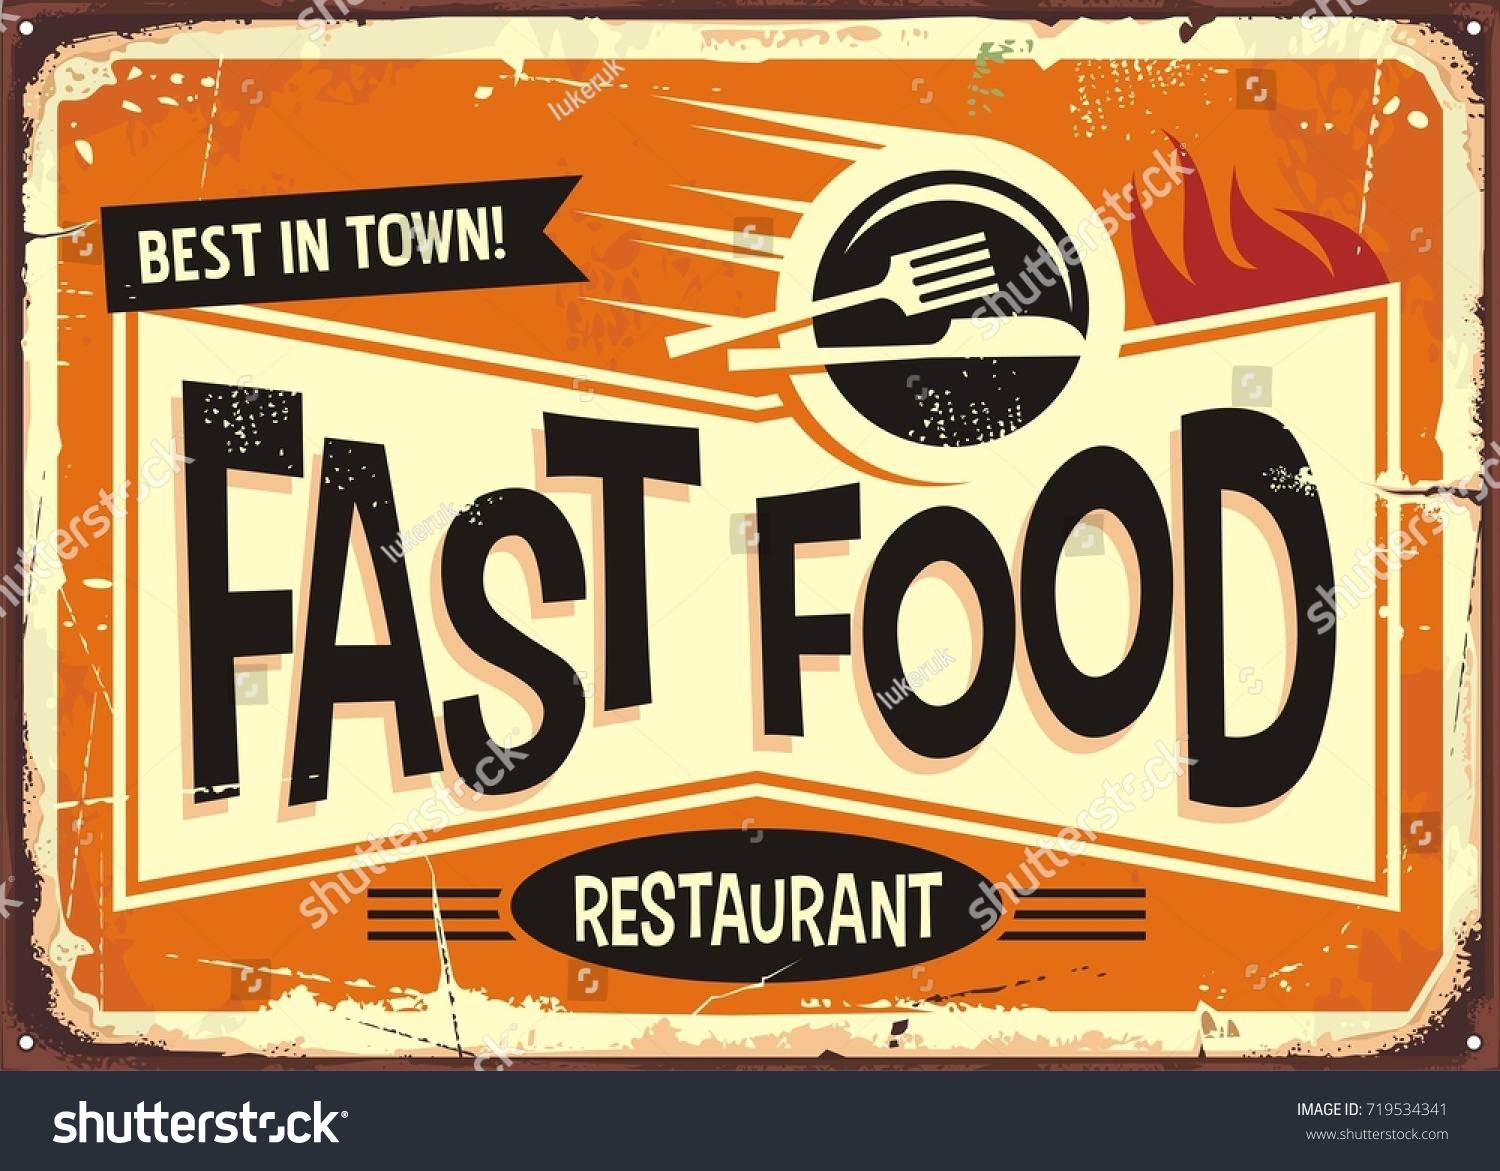 Fast Food Restaurant Vintage Tin Sign Stock Vector Royalty Free 719534341